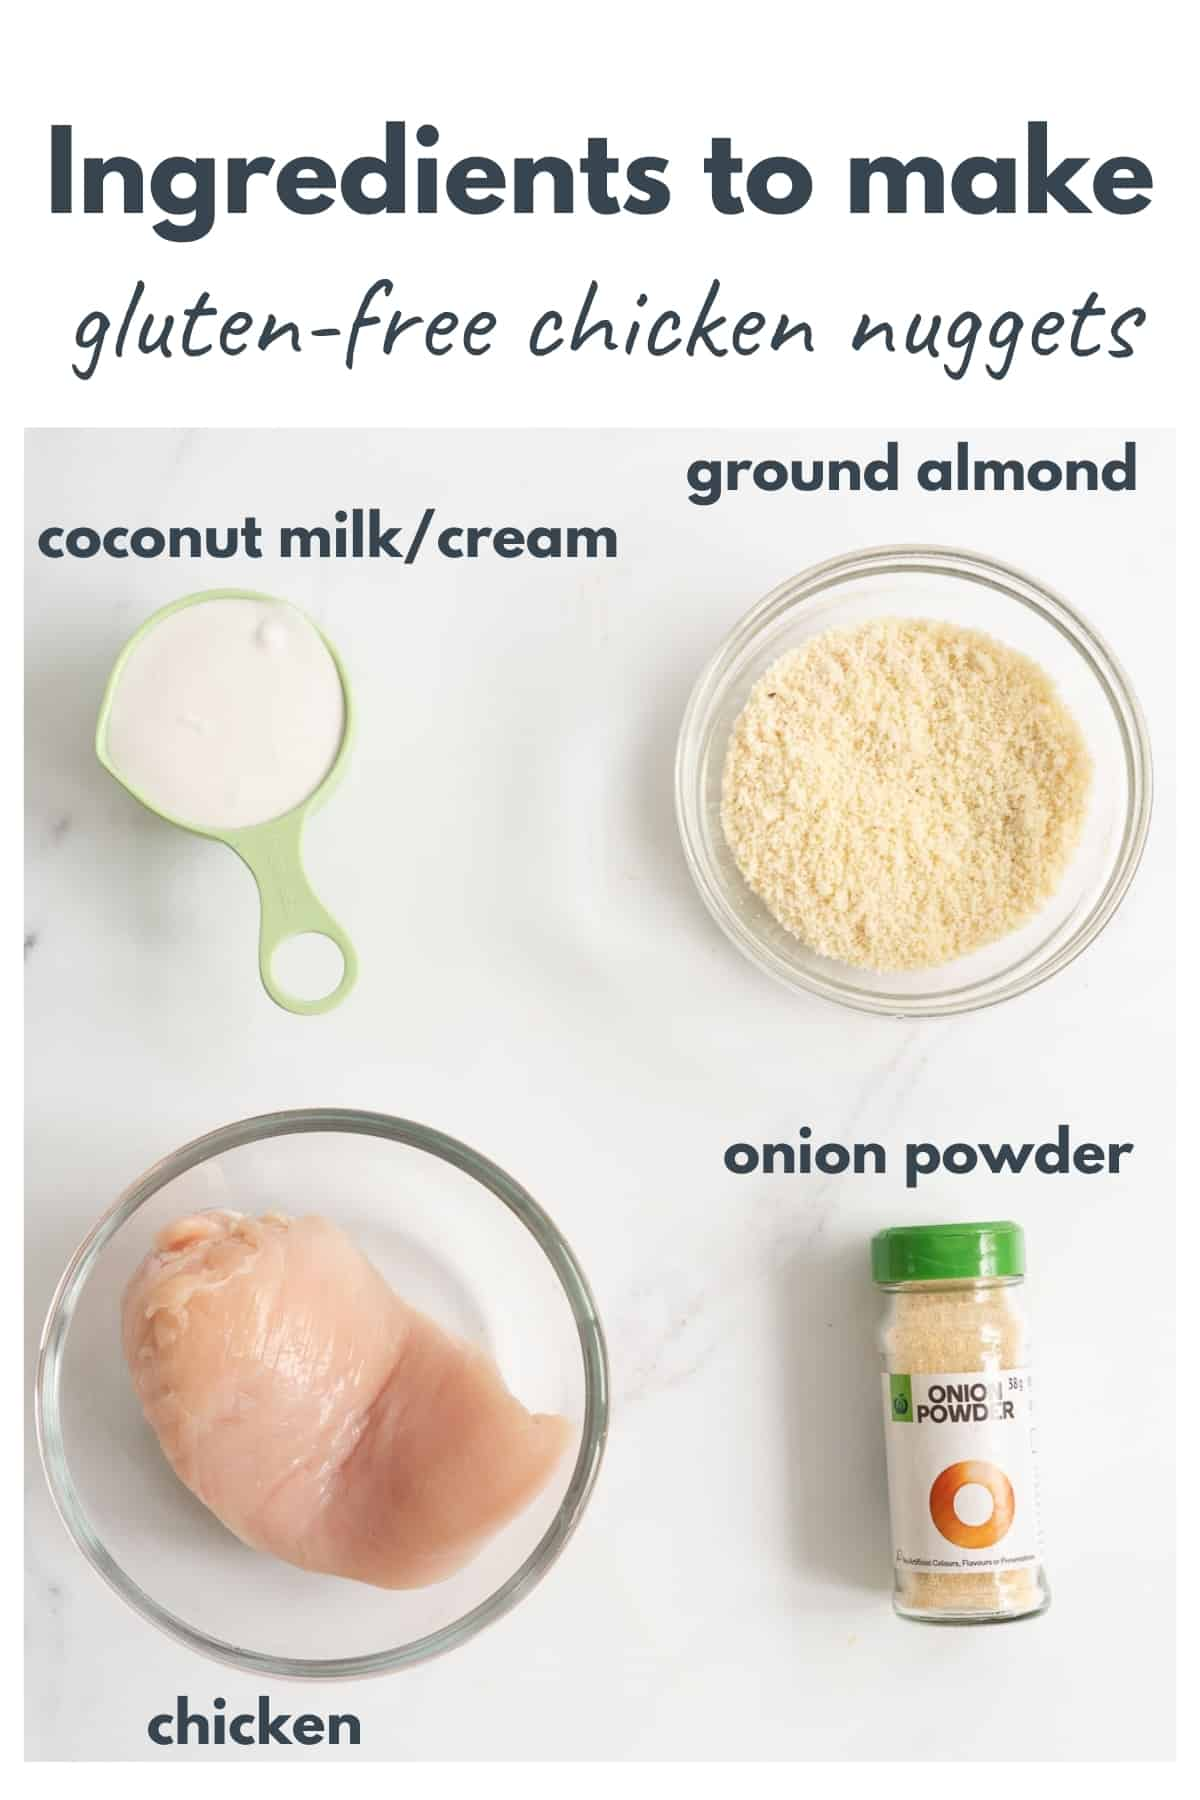 The ingredients to make gluten free chicken nuggets laid out on a bench top with text overlay.